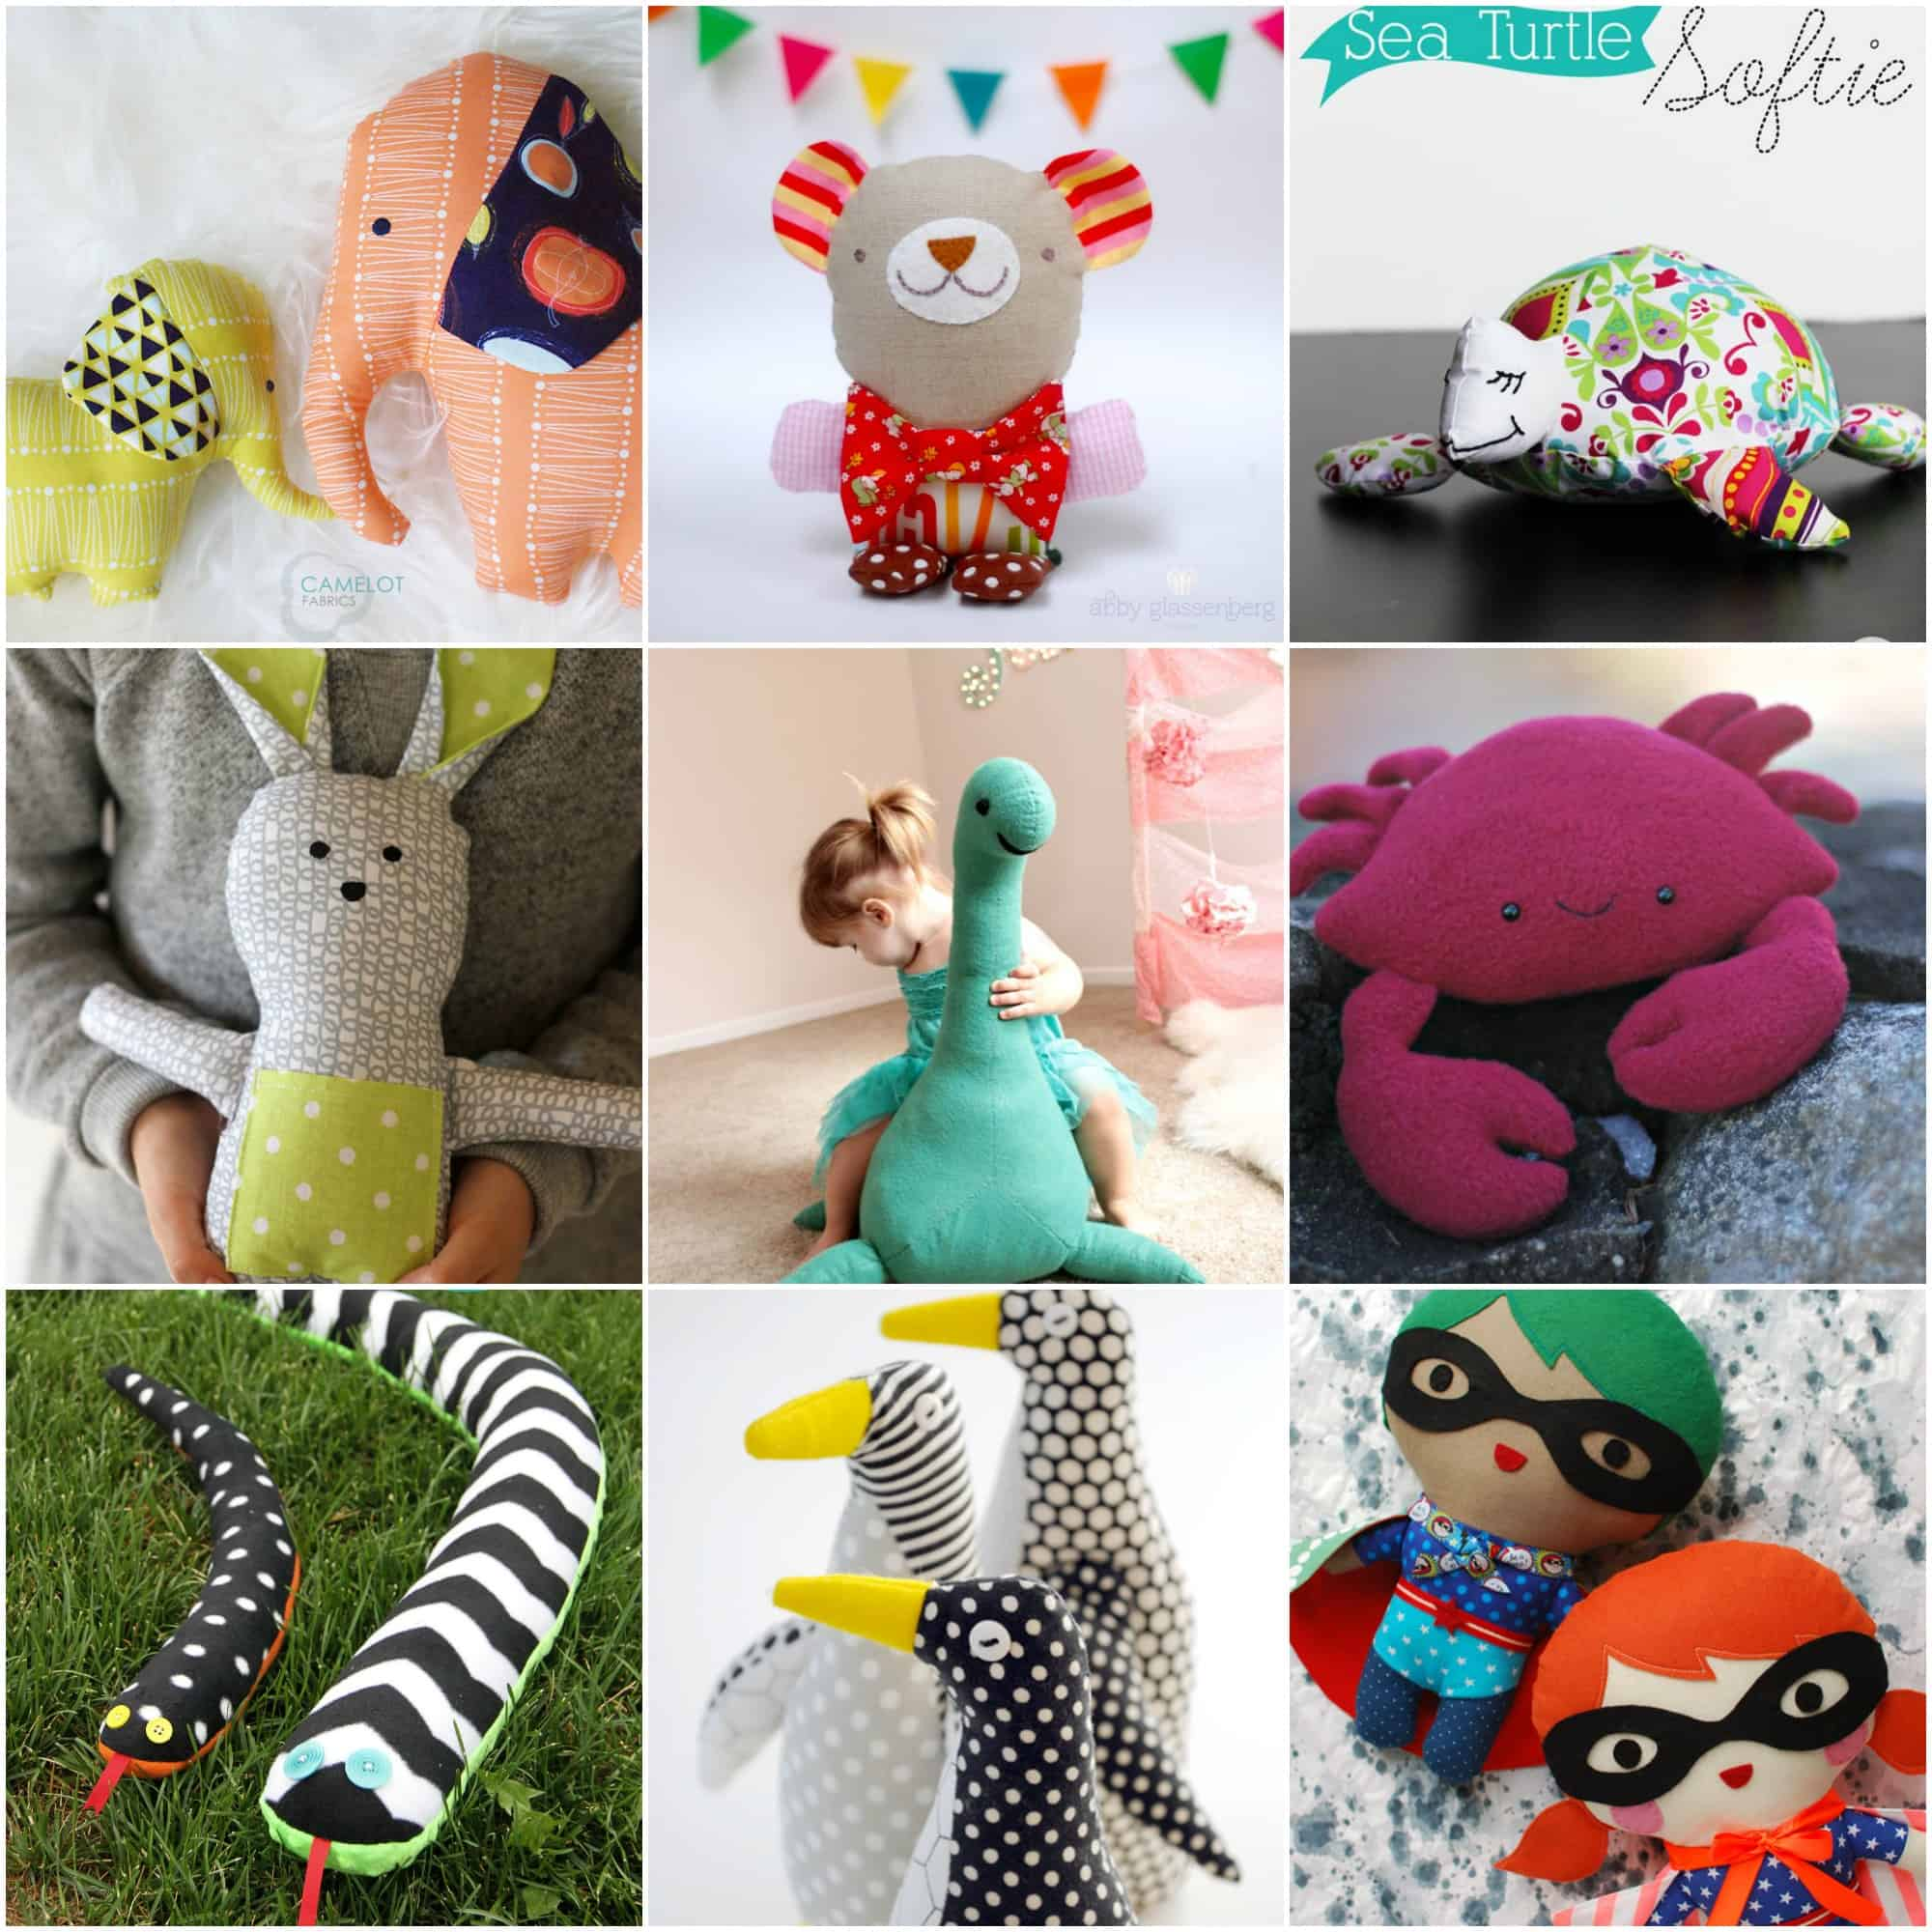 Softies plushies stuffies or stuffed animals any name will do this collection of the cutest free stuffed animal patterns will put a smile on your face theres something for everyone dont forget sewing jeuxipadfo Image collections